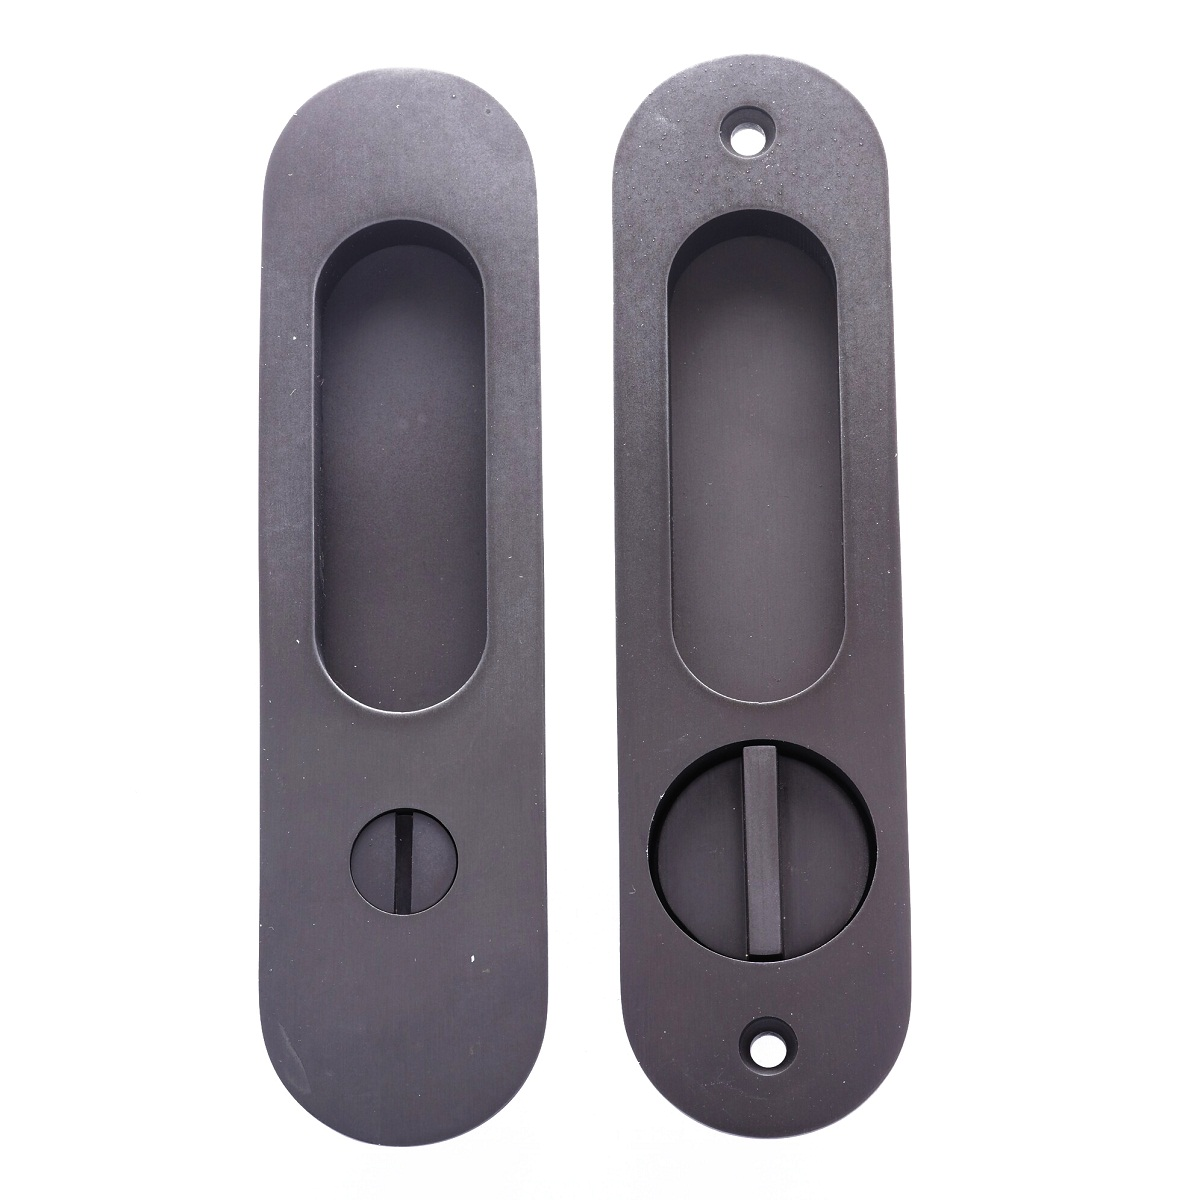 Round Pocket Door Hardware linnea pl-160r round privacy pocket door lock